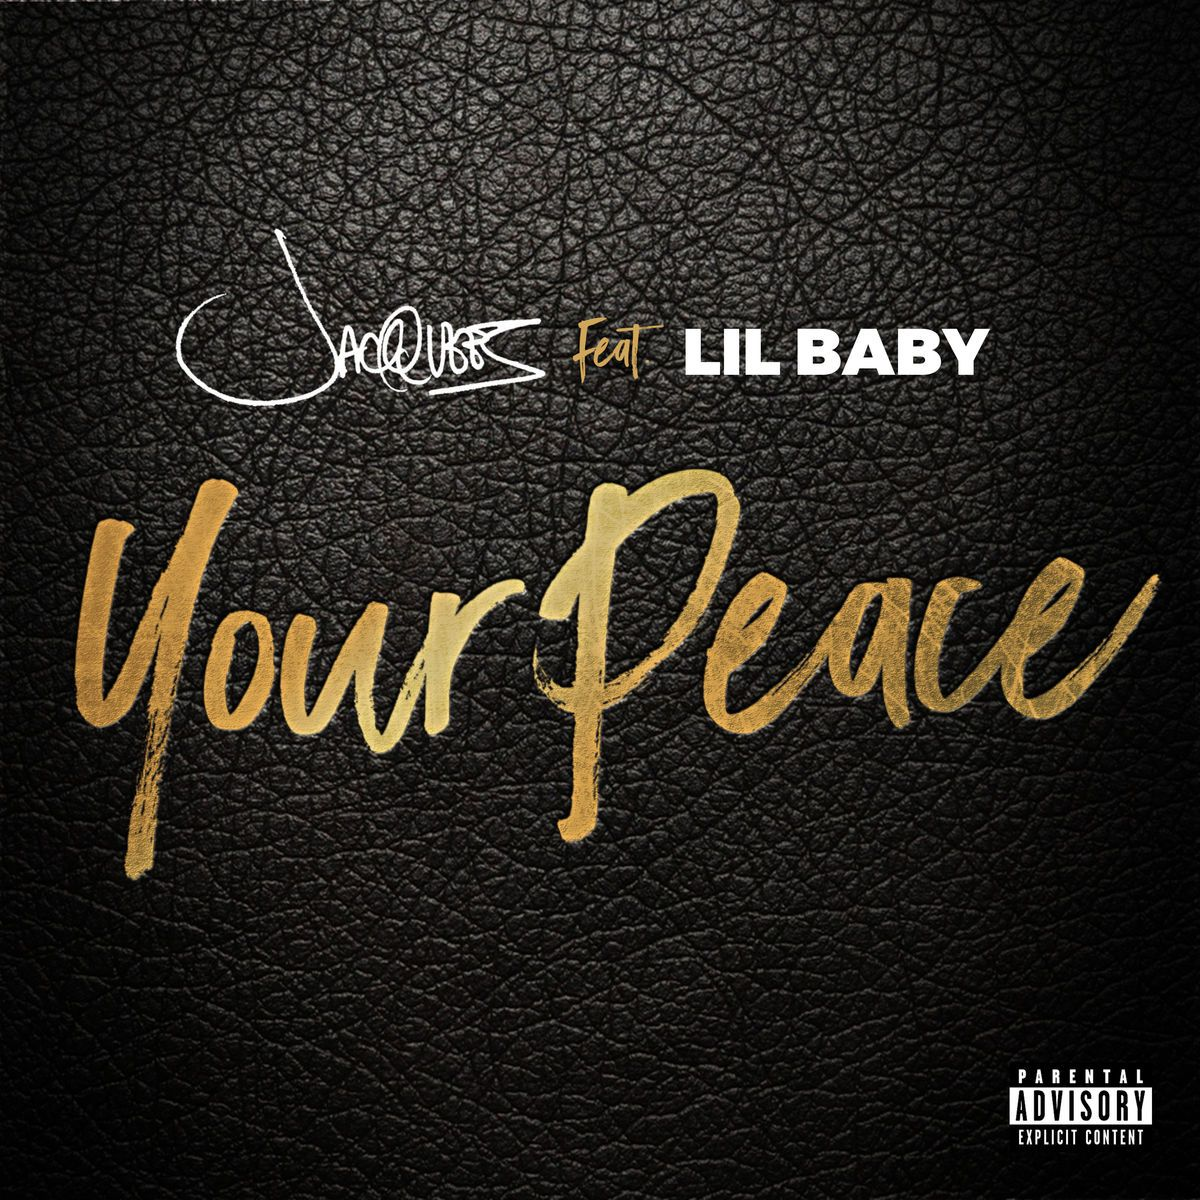 """New Music: Jacquees – """"Your Peace"""" (feat. Lil Baby)"""